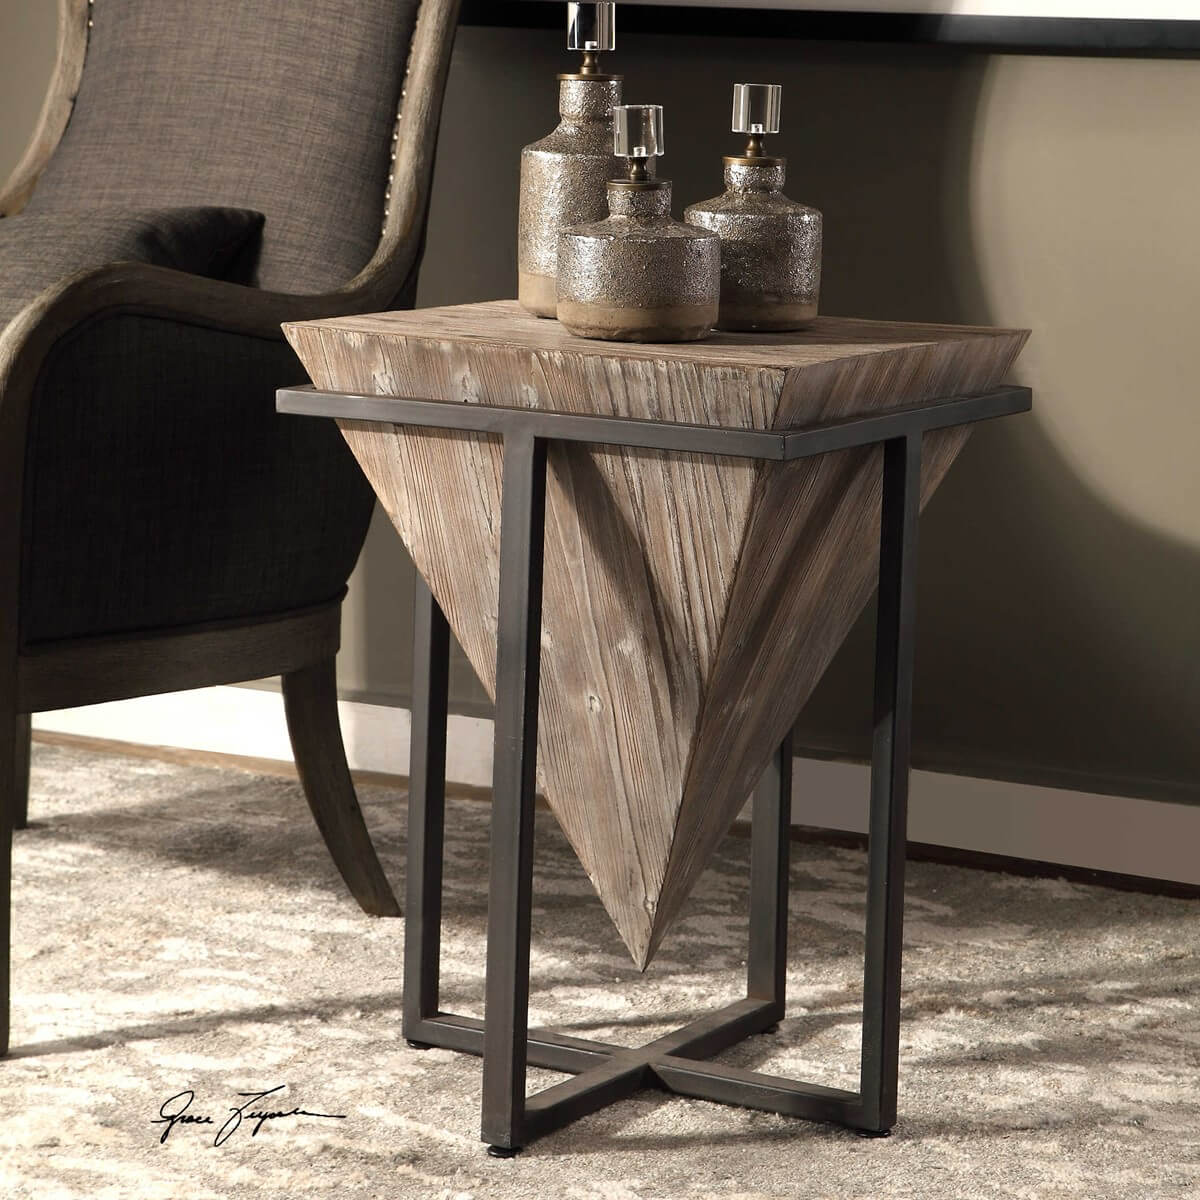 uttermost accent furniture mirrors wall decor clocks lamps art tall round pedestal table cube side aluminum outdoor coffee screw metal legs entry hairpin leg stool pier one dining